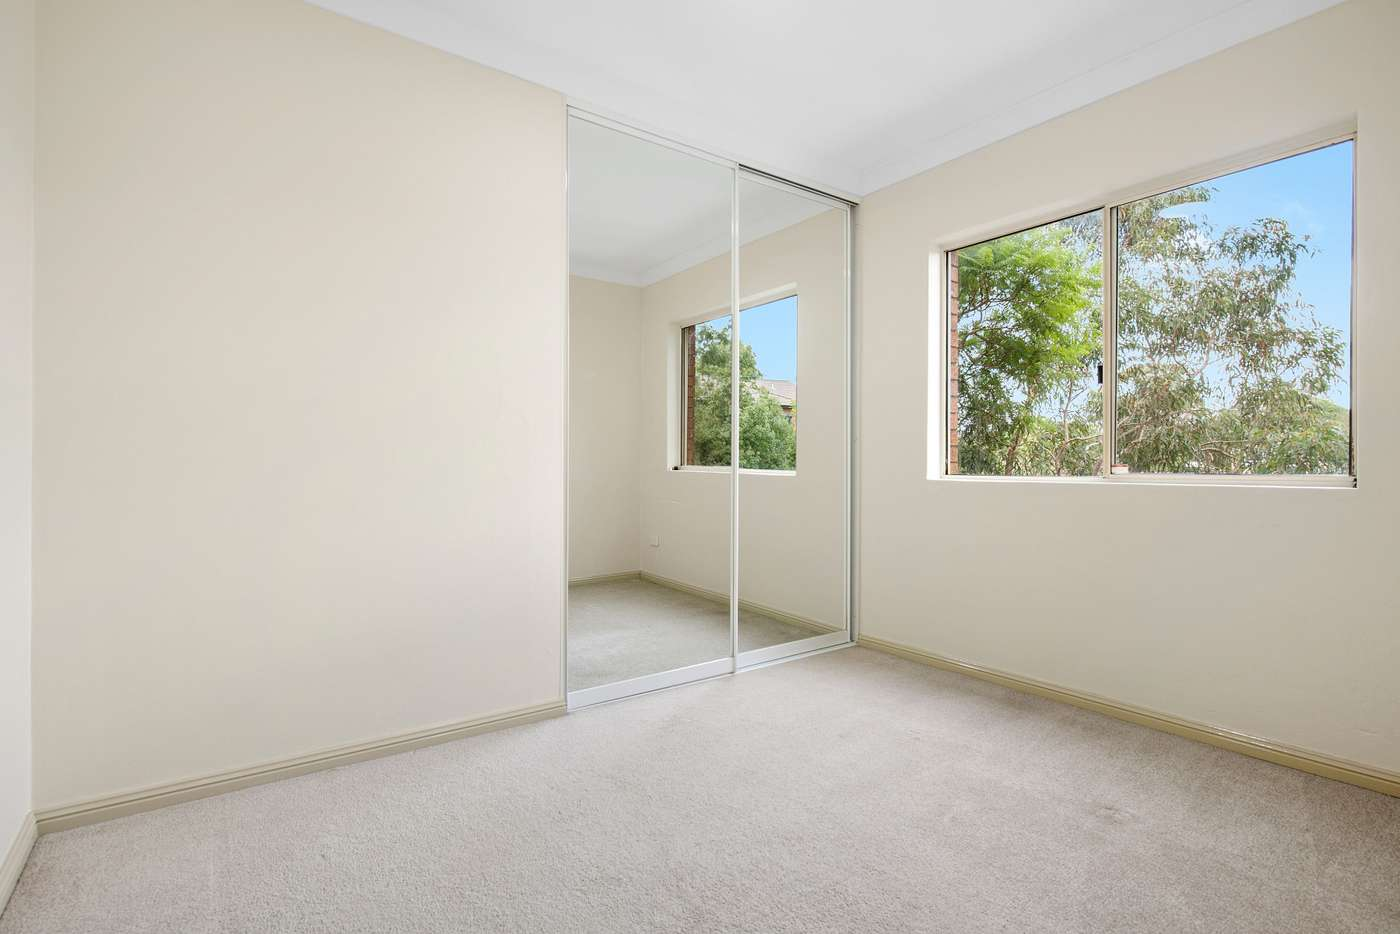 Sixth view of Homely unit listing, 19/6-10 May Street, Hornsby NSW 2077